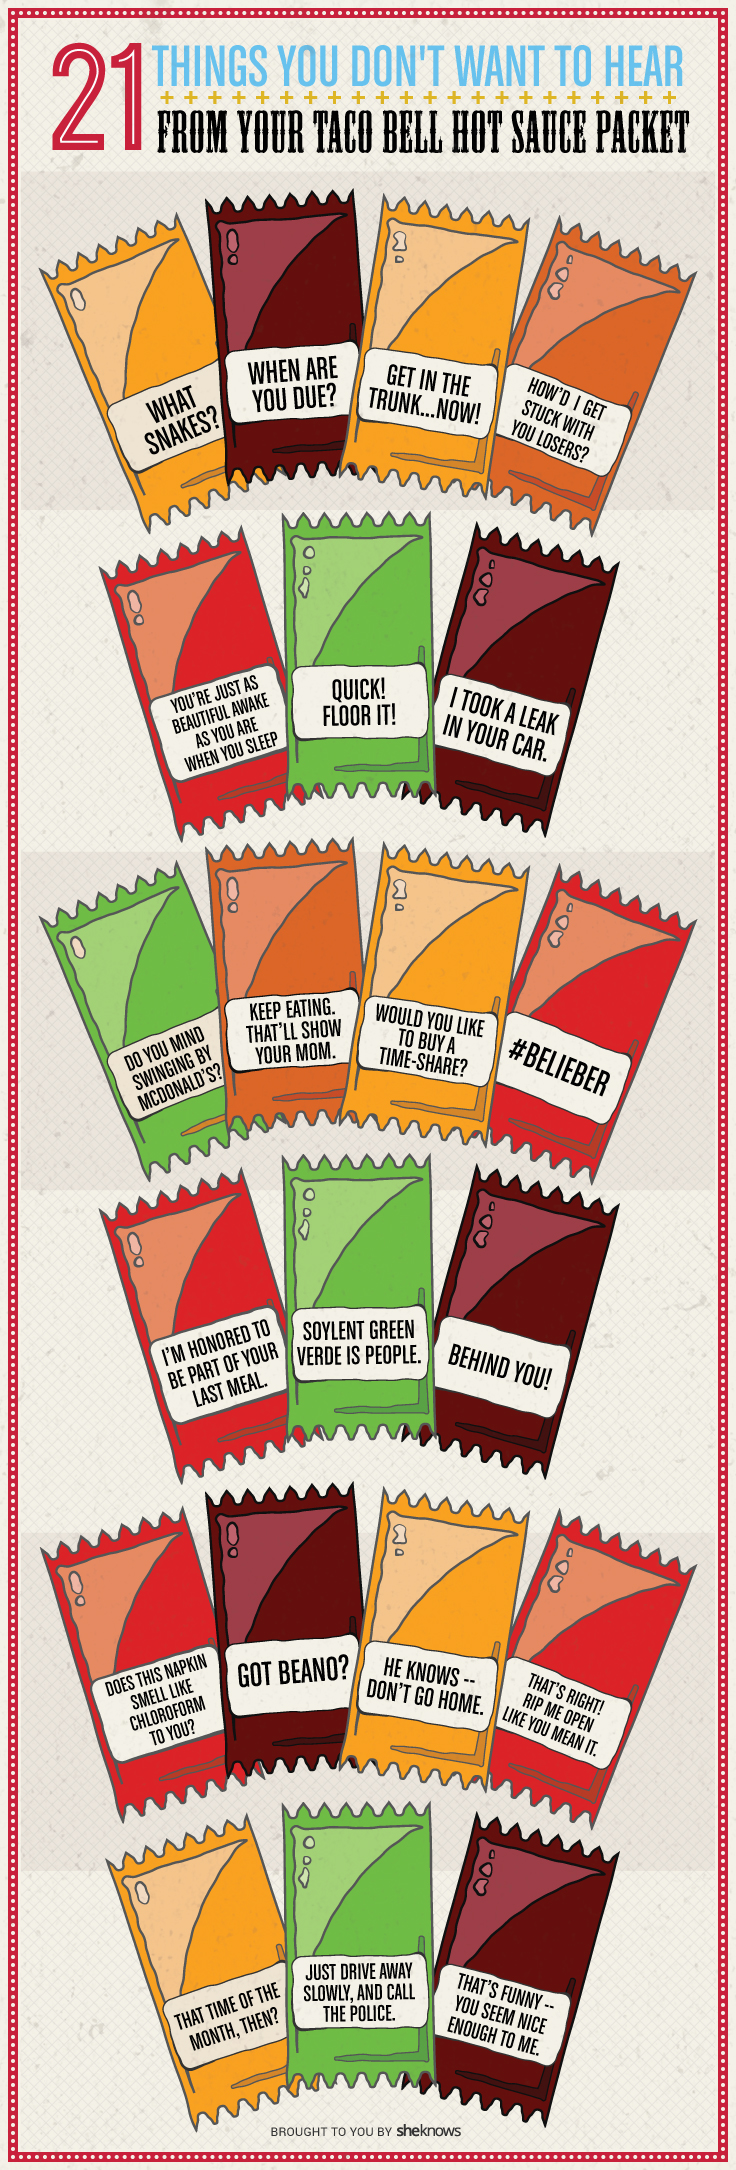 Taco Bell hot sauce packet sayings